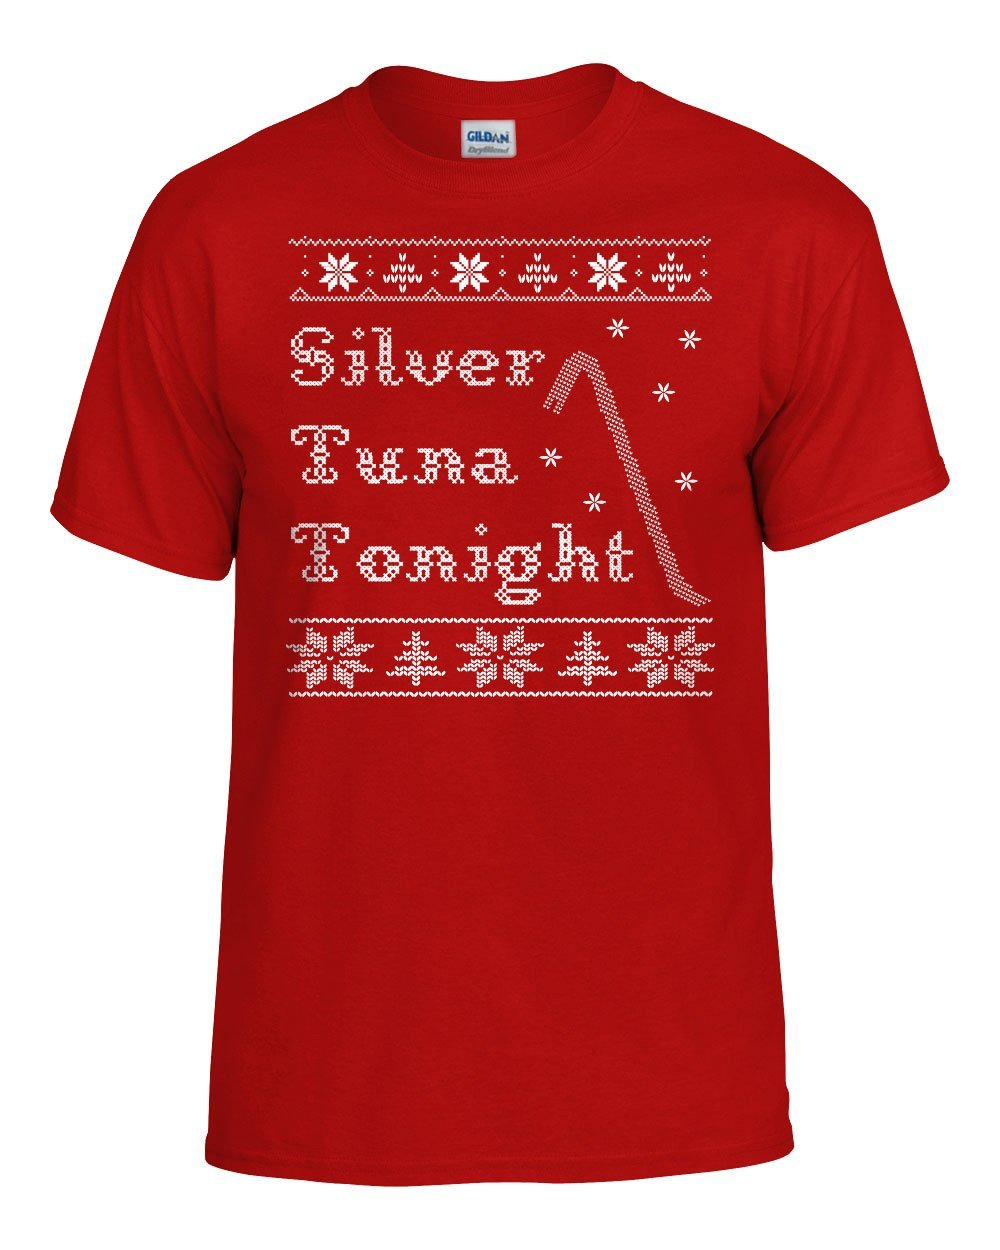 Home Alone T-Shirt Silver Tuna Tonight Funny Christmas Ugly Sweater Retro Movie Cross Stitch Retro